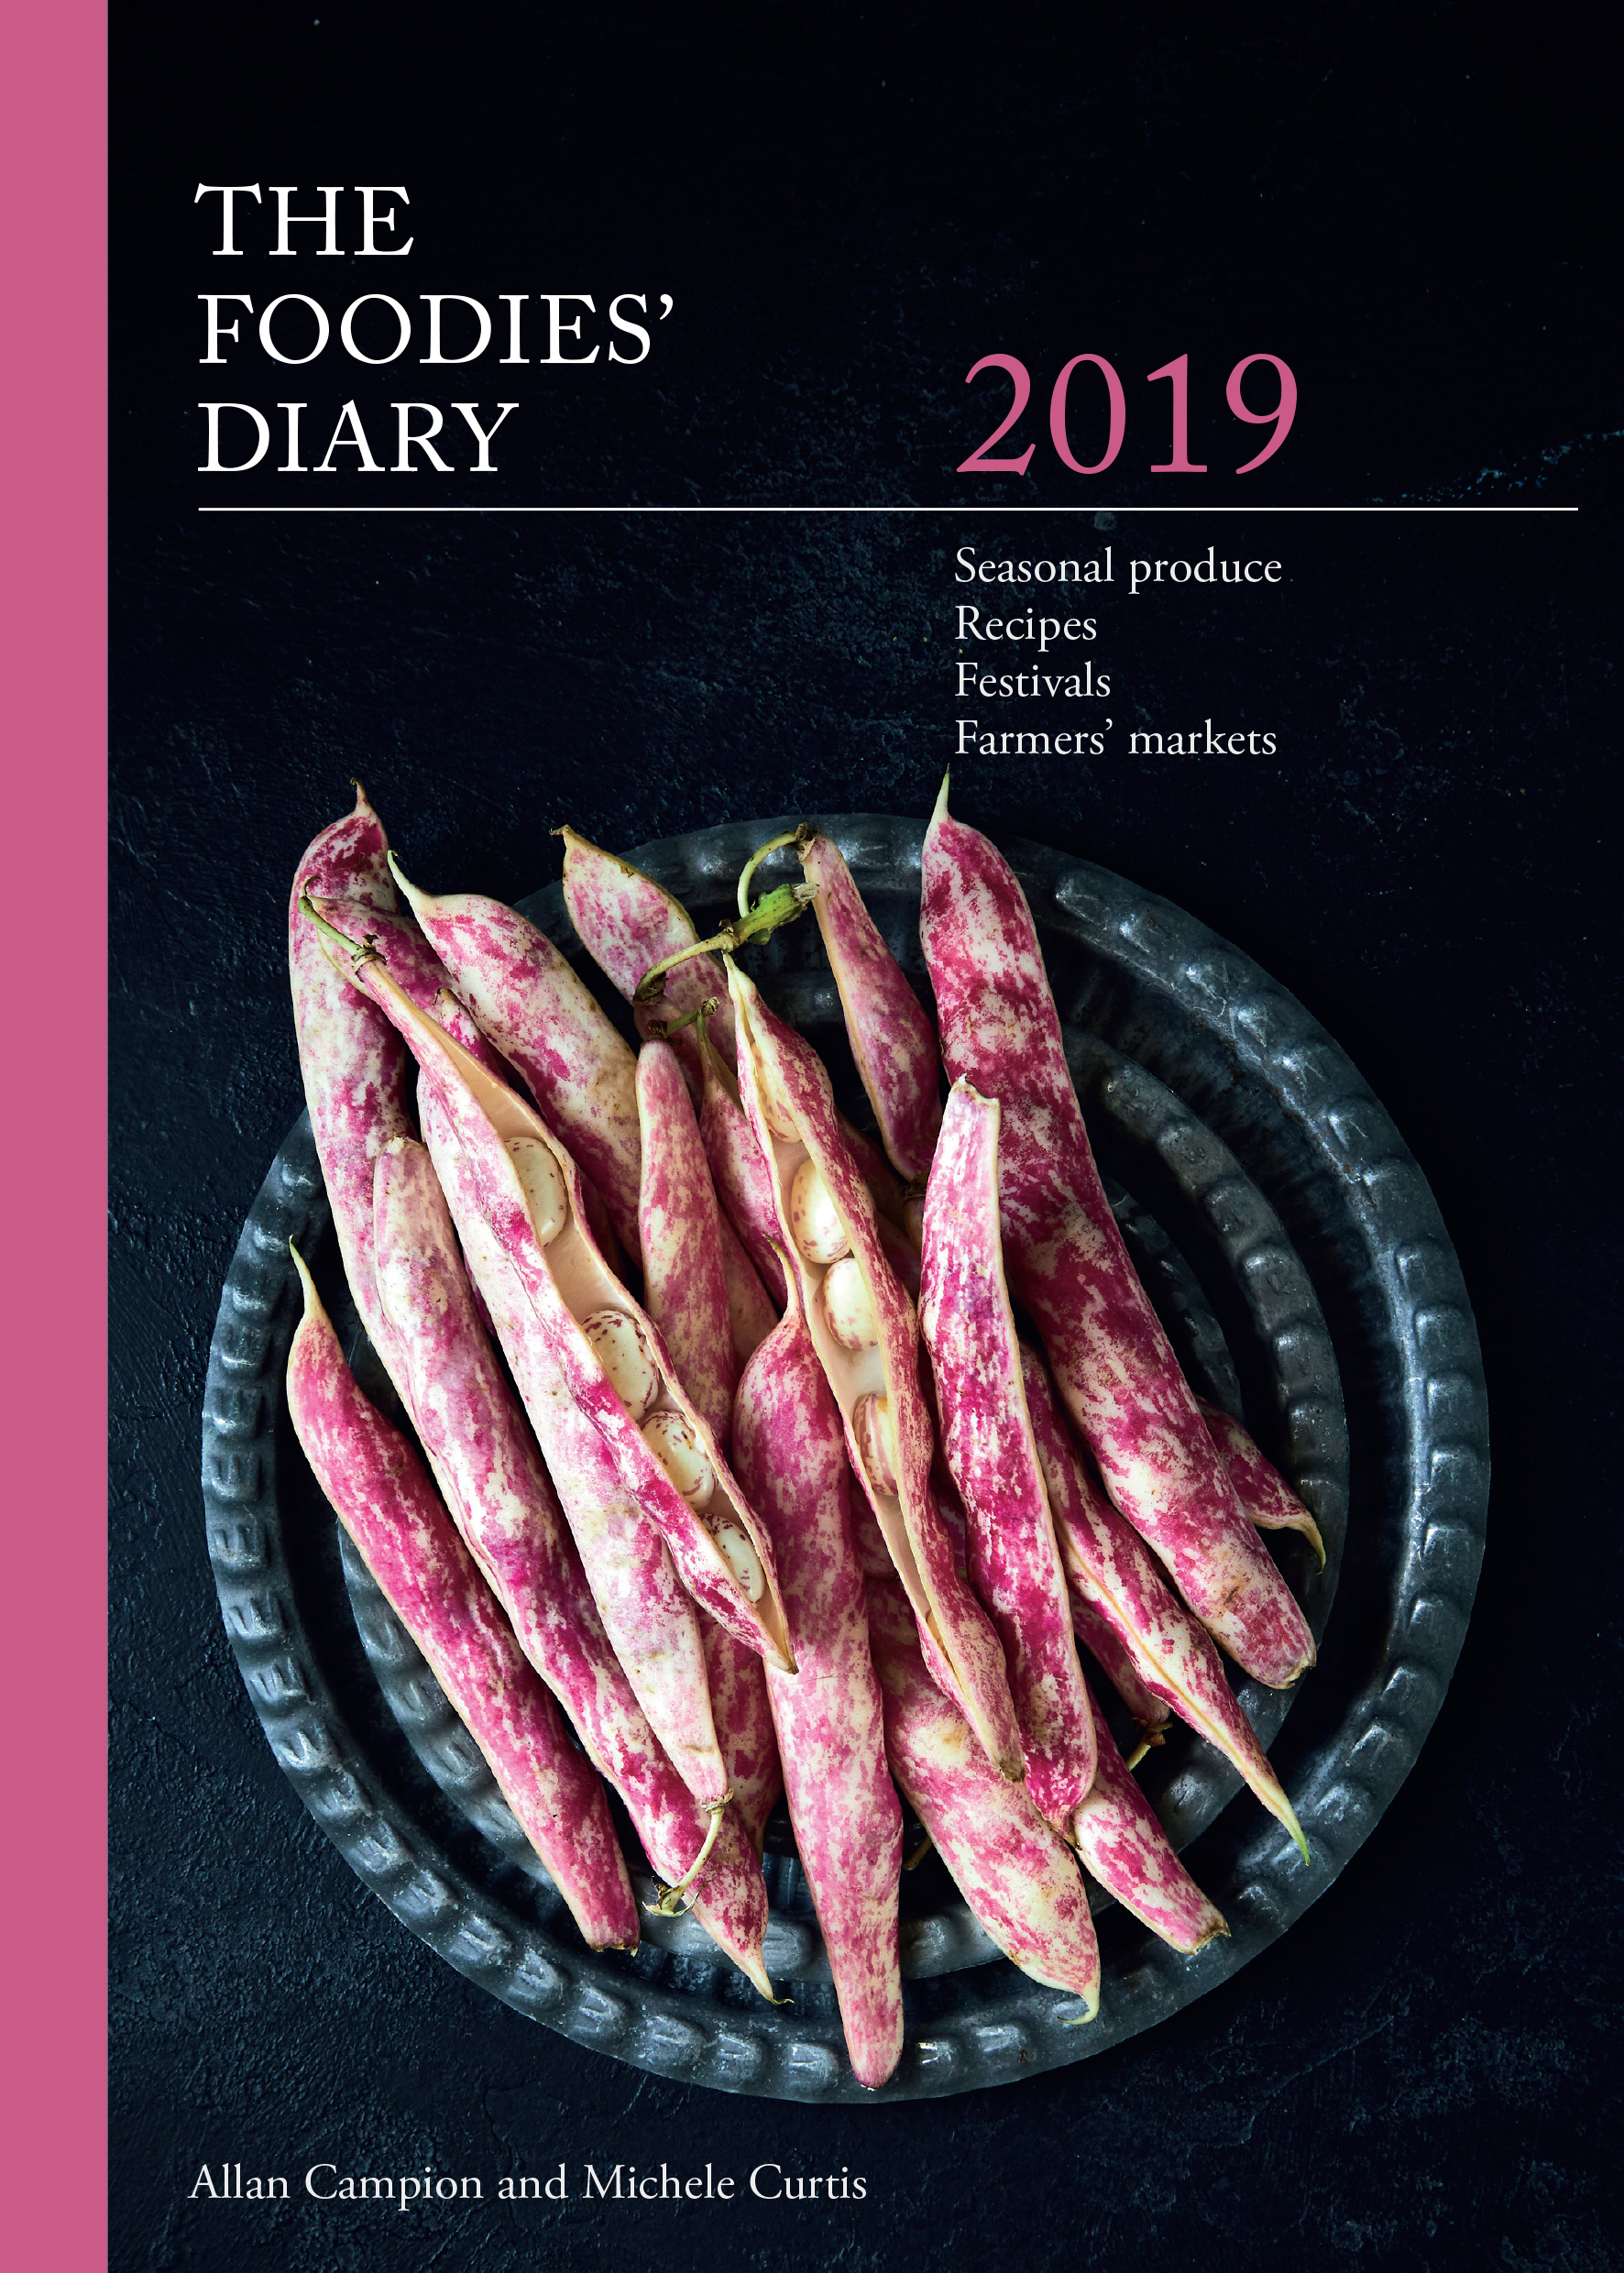 The 2019 Foodies' Diary